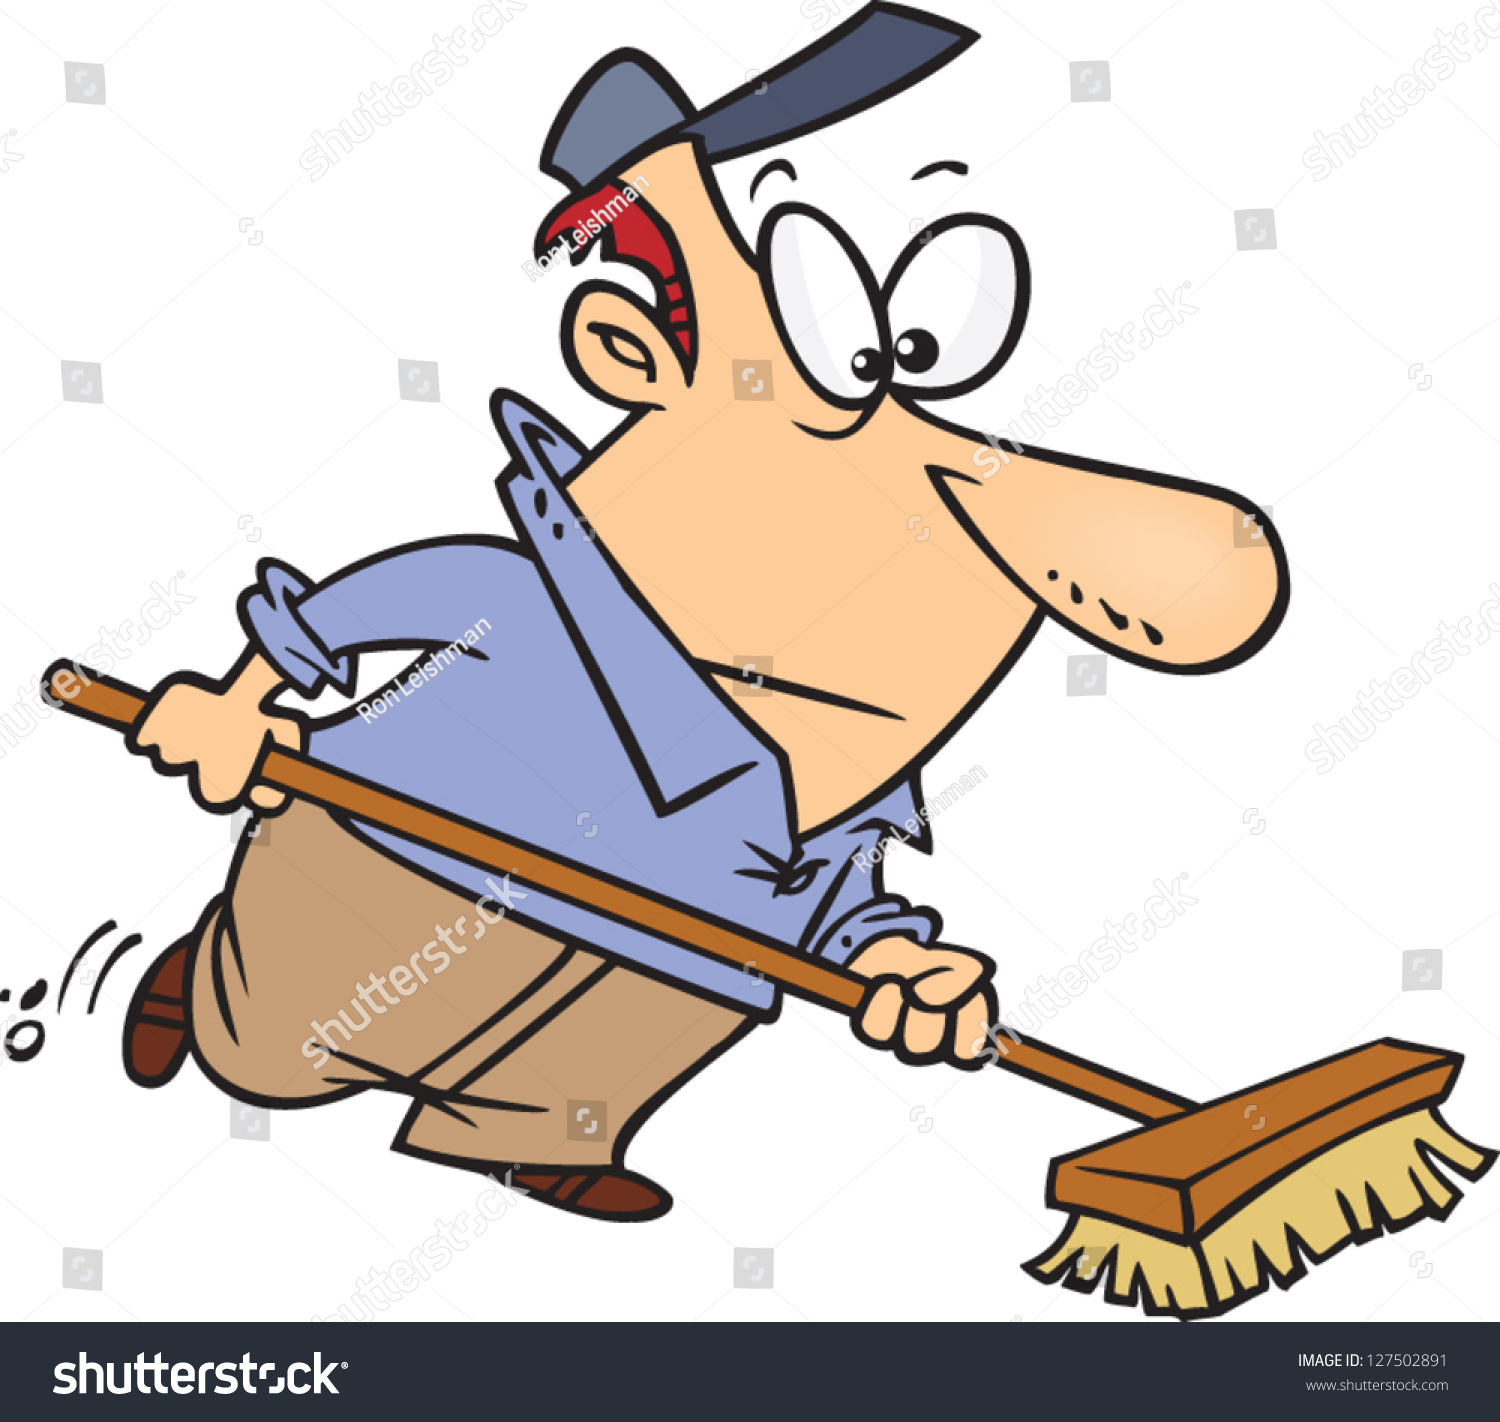 vector illustration cartoon janitor sweeping stock vector janitorial clip art images janitorial clipart mop bucket